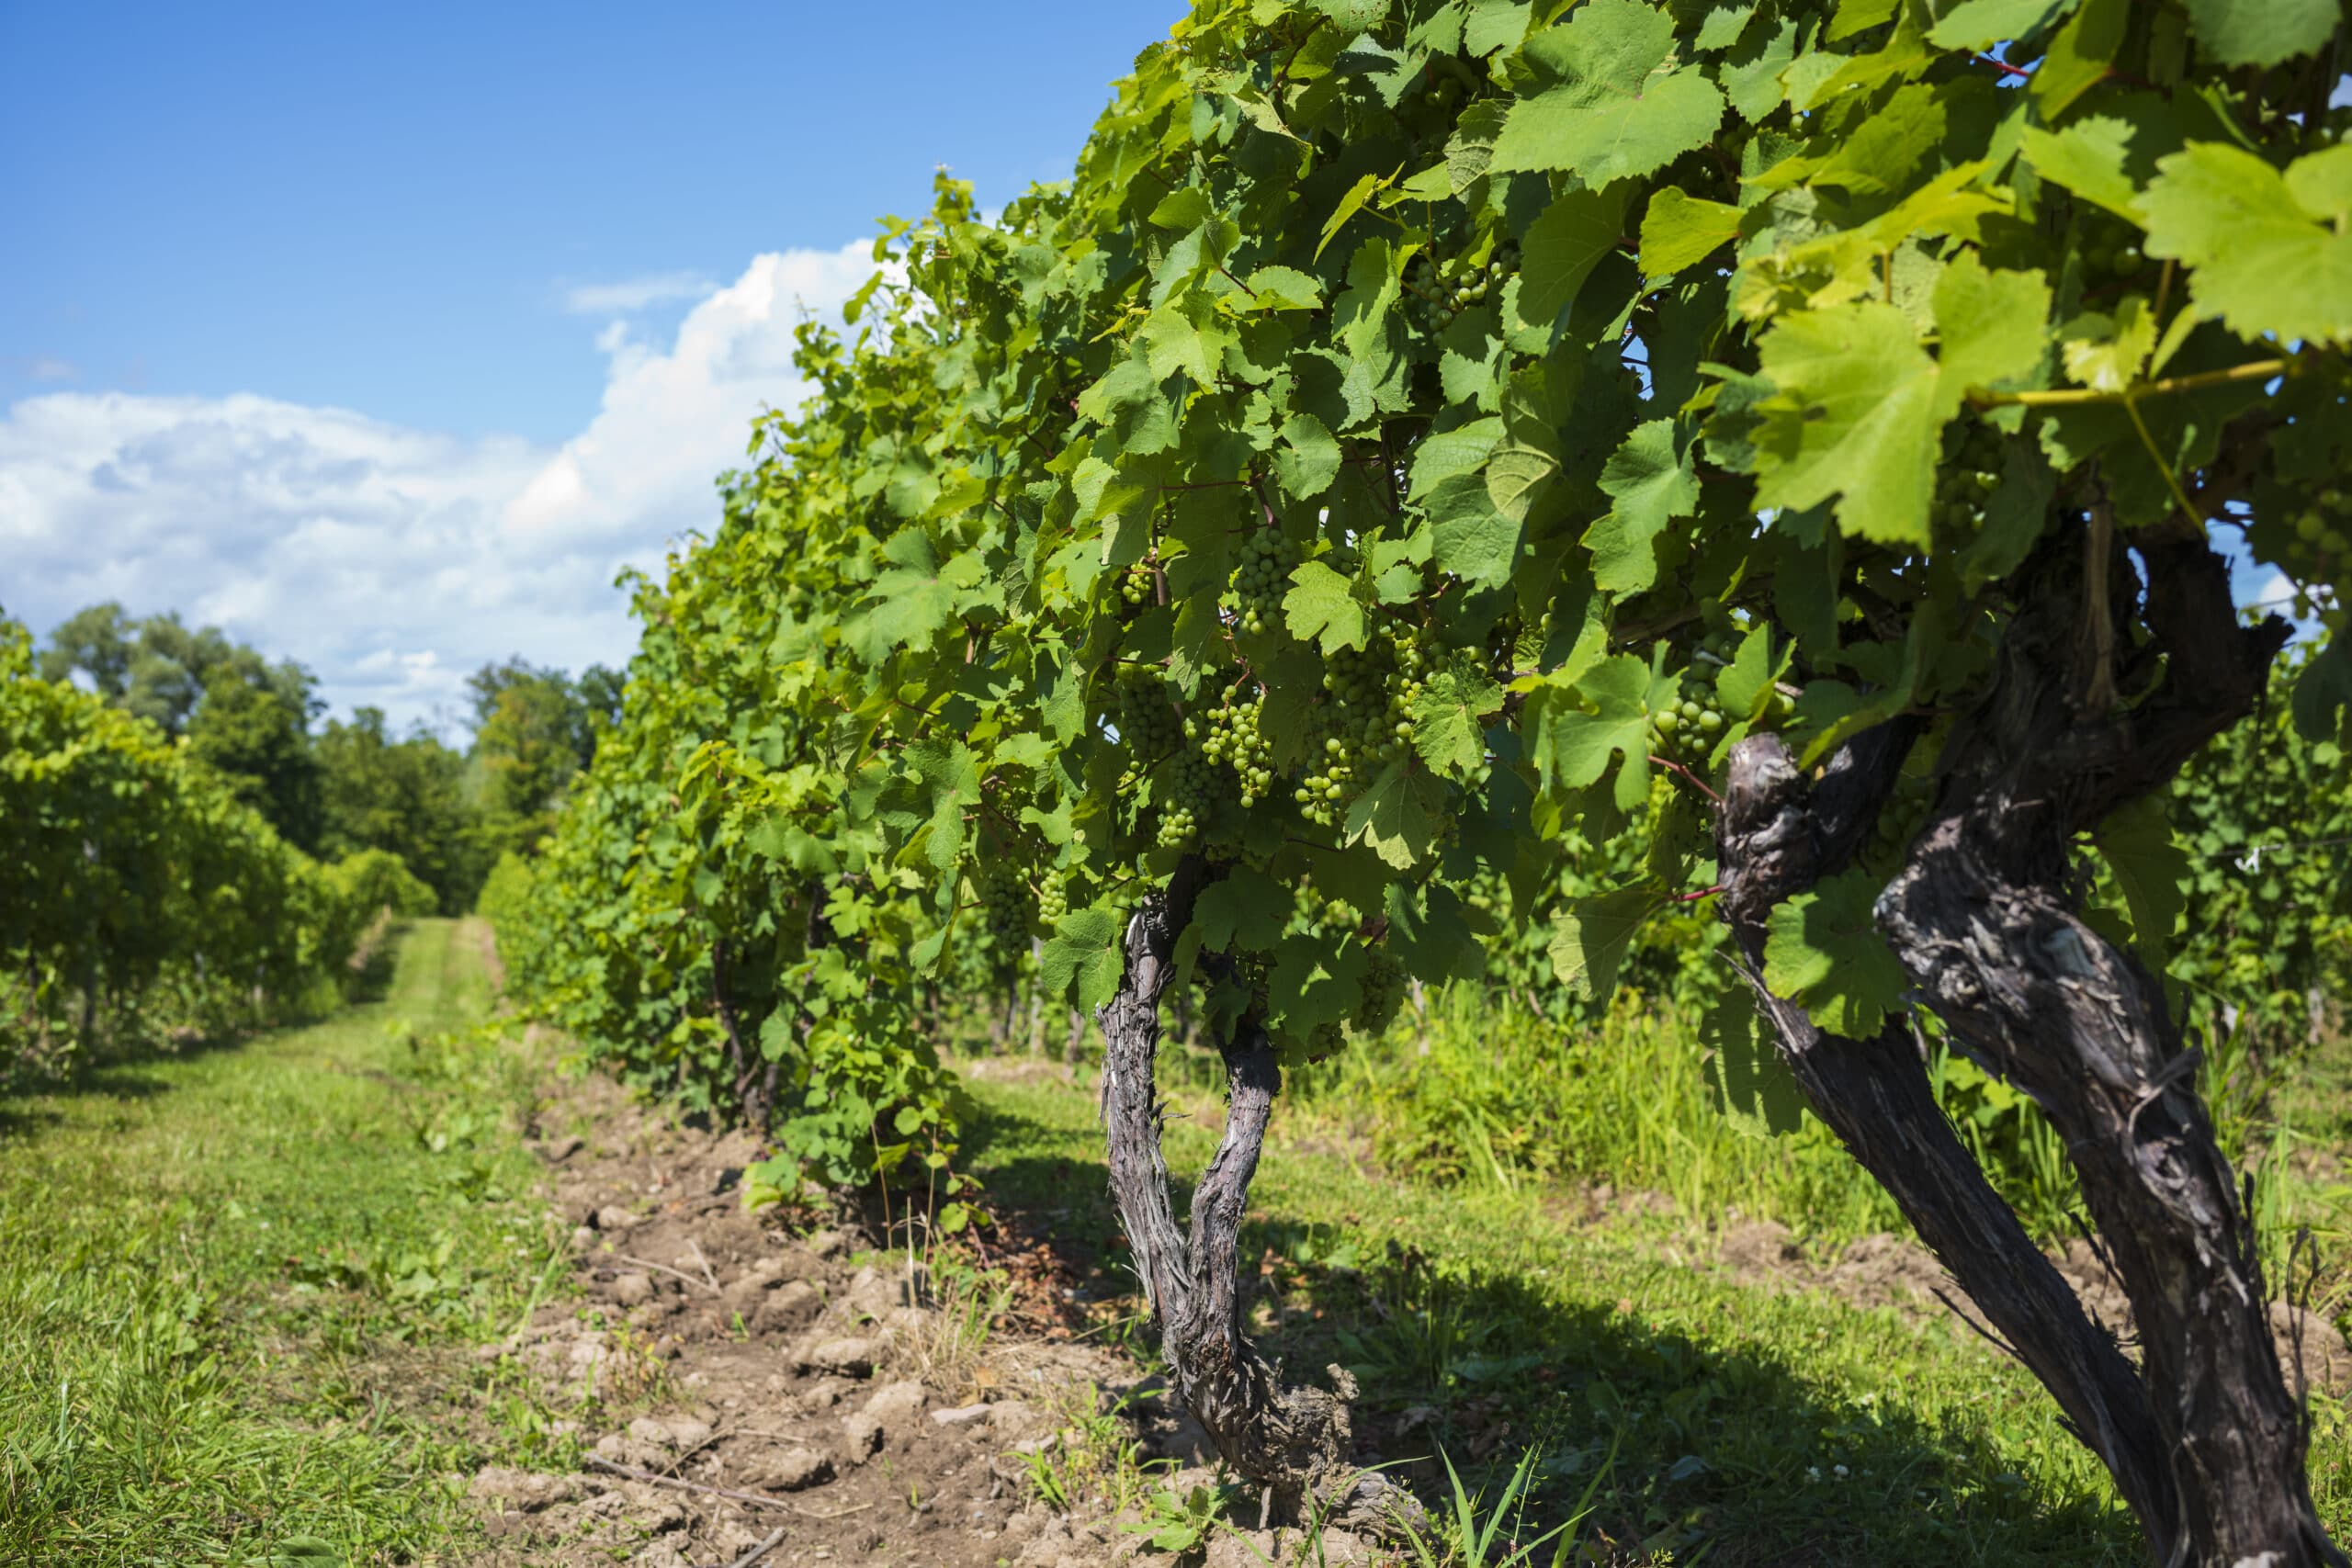 Grapes grow in a vineyard, located in the Finger Lakes Region of New York State, for the purpose of producing white wine.